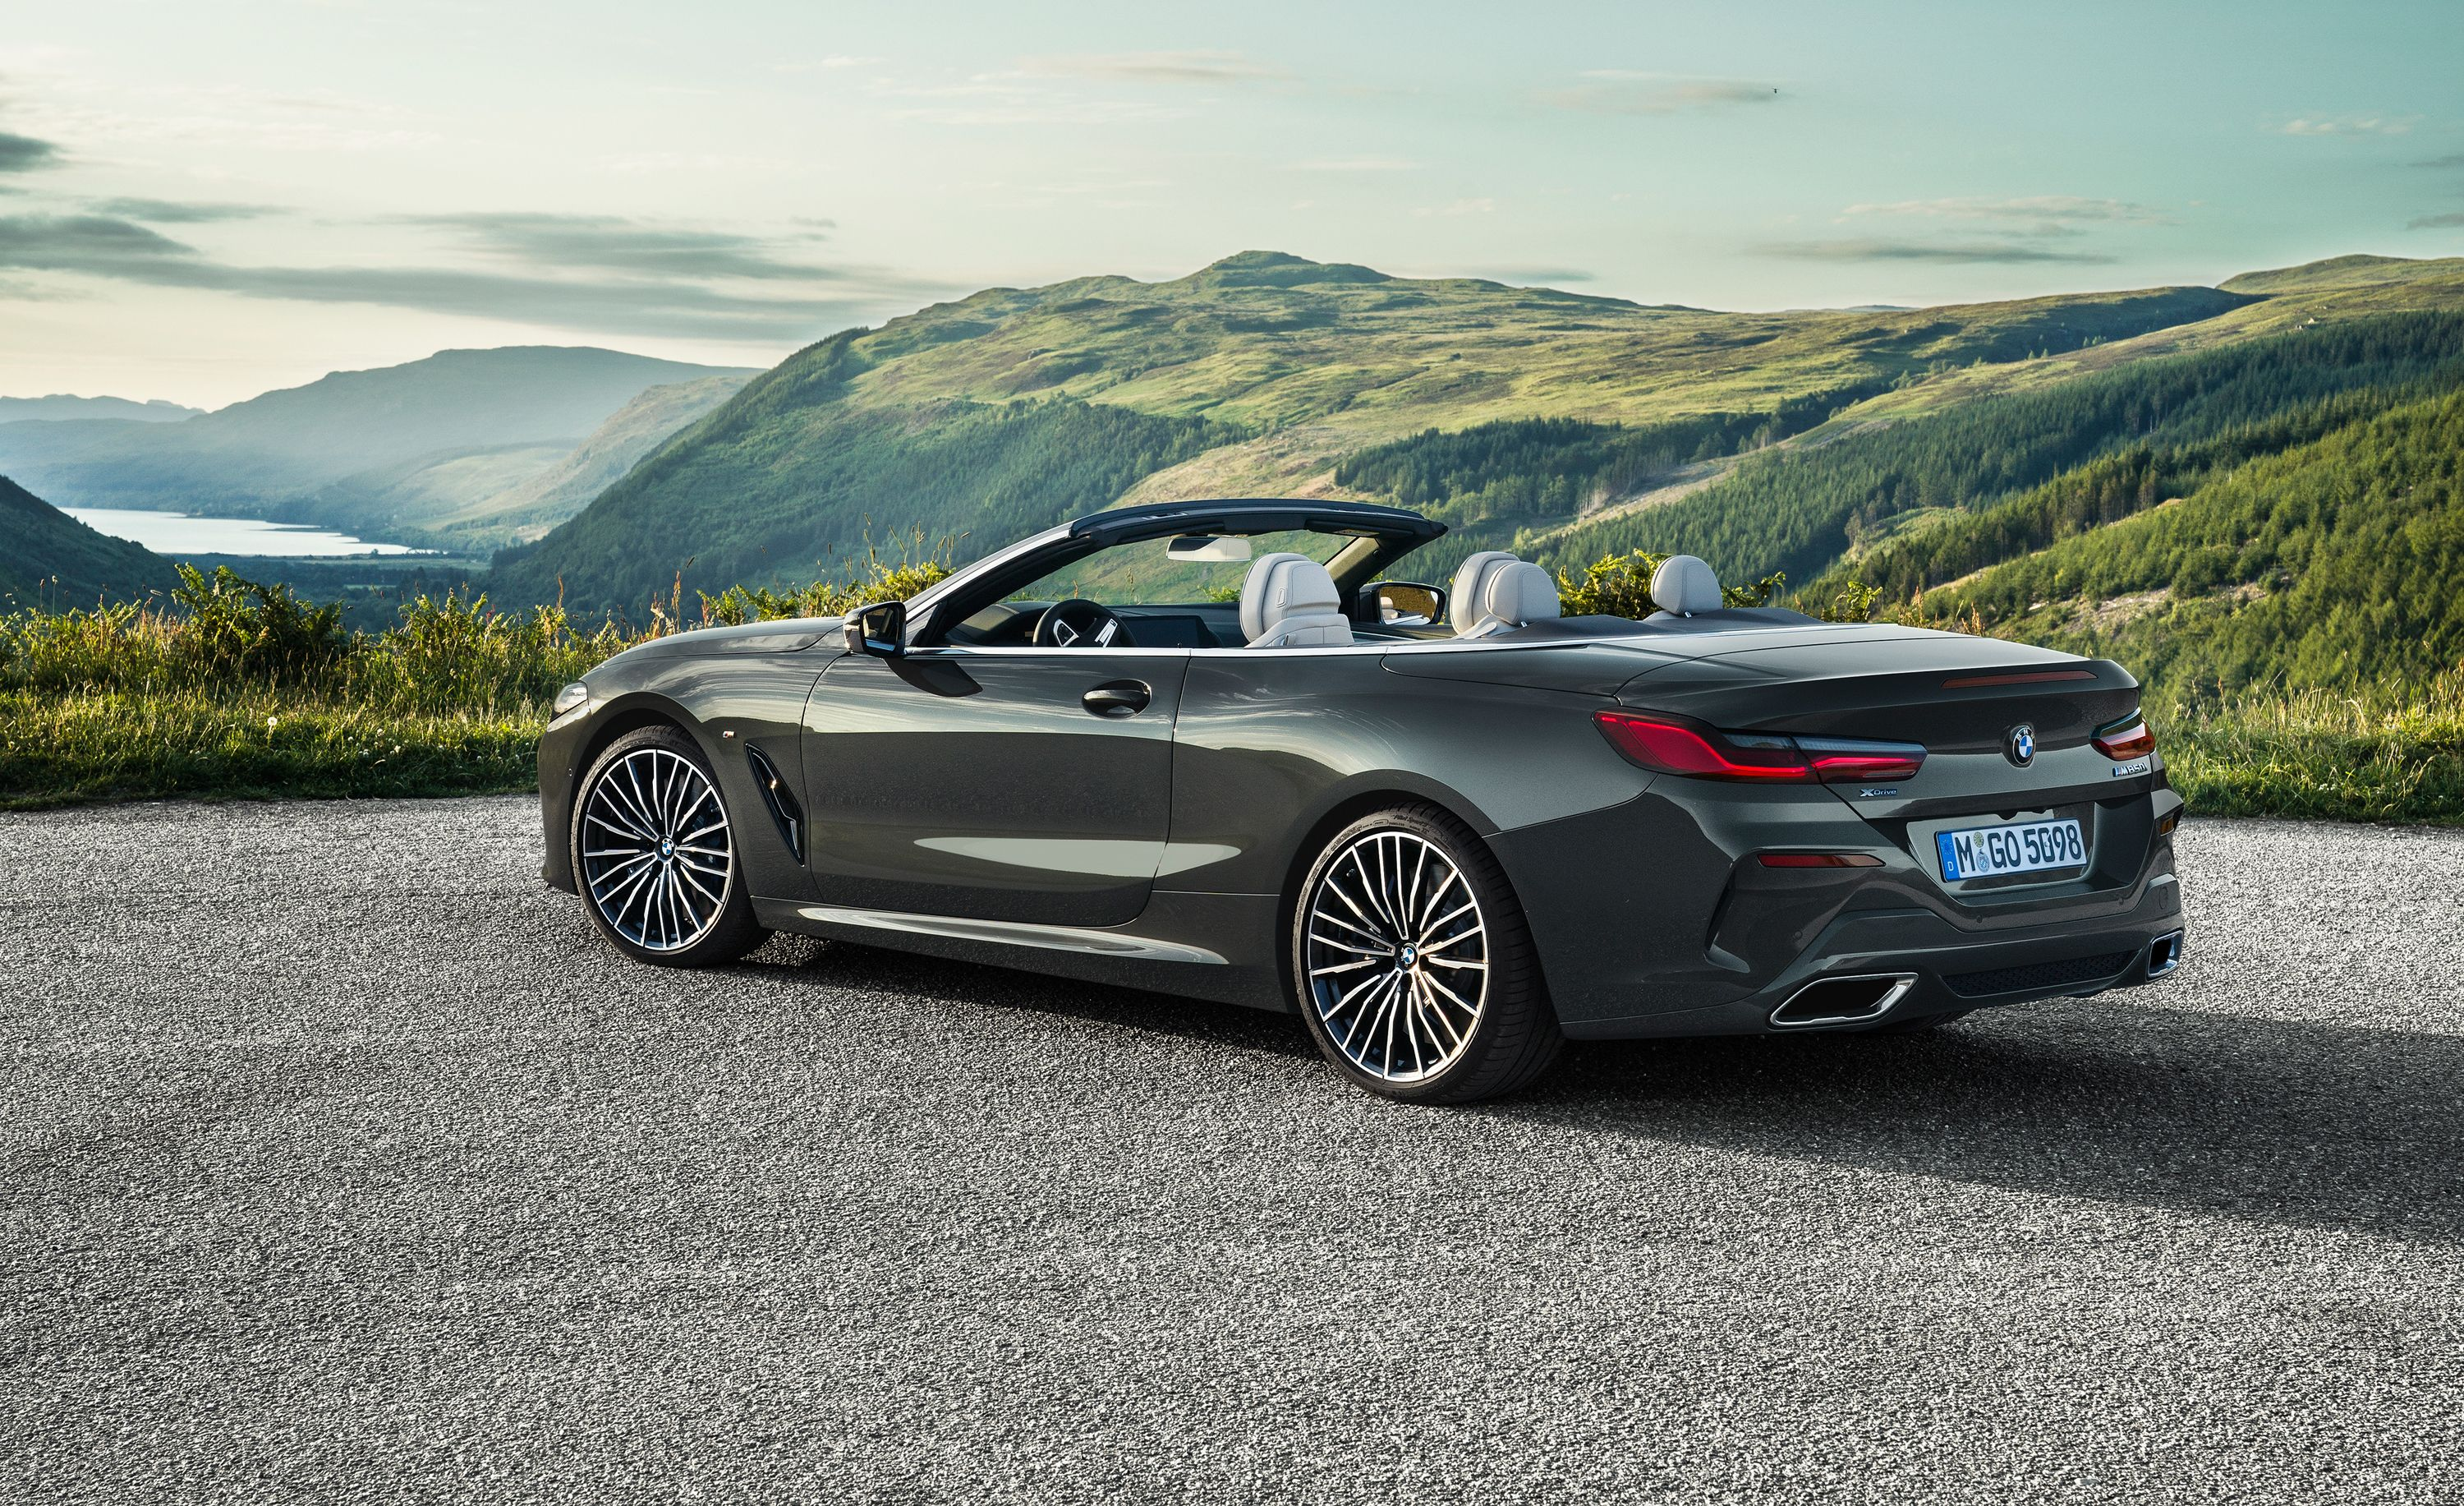 The 2019 BMW 8-series Convertible Looks Just as Good as the Coupe